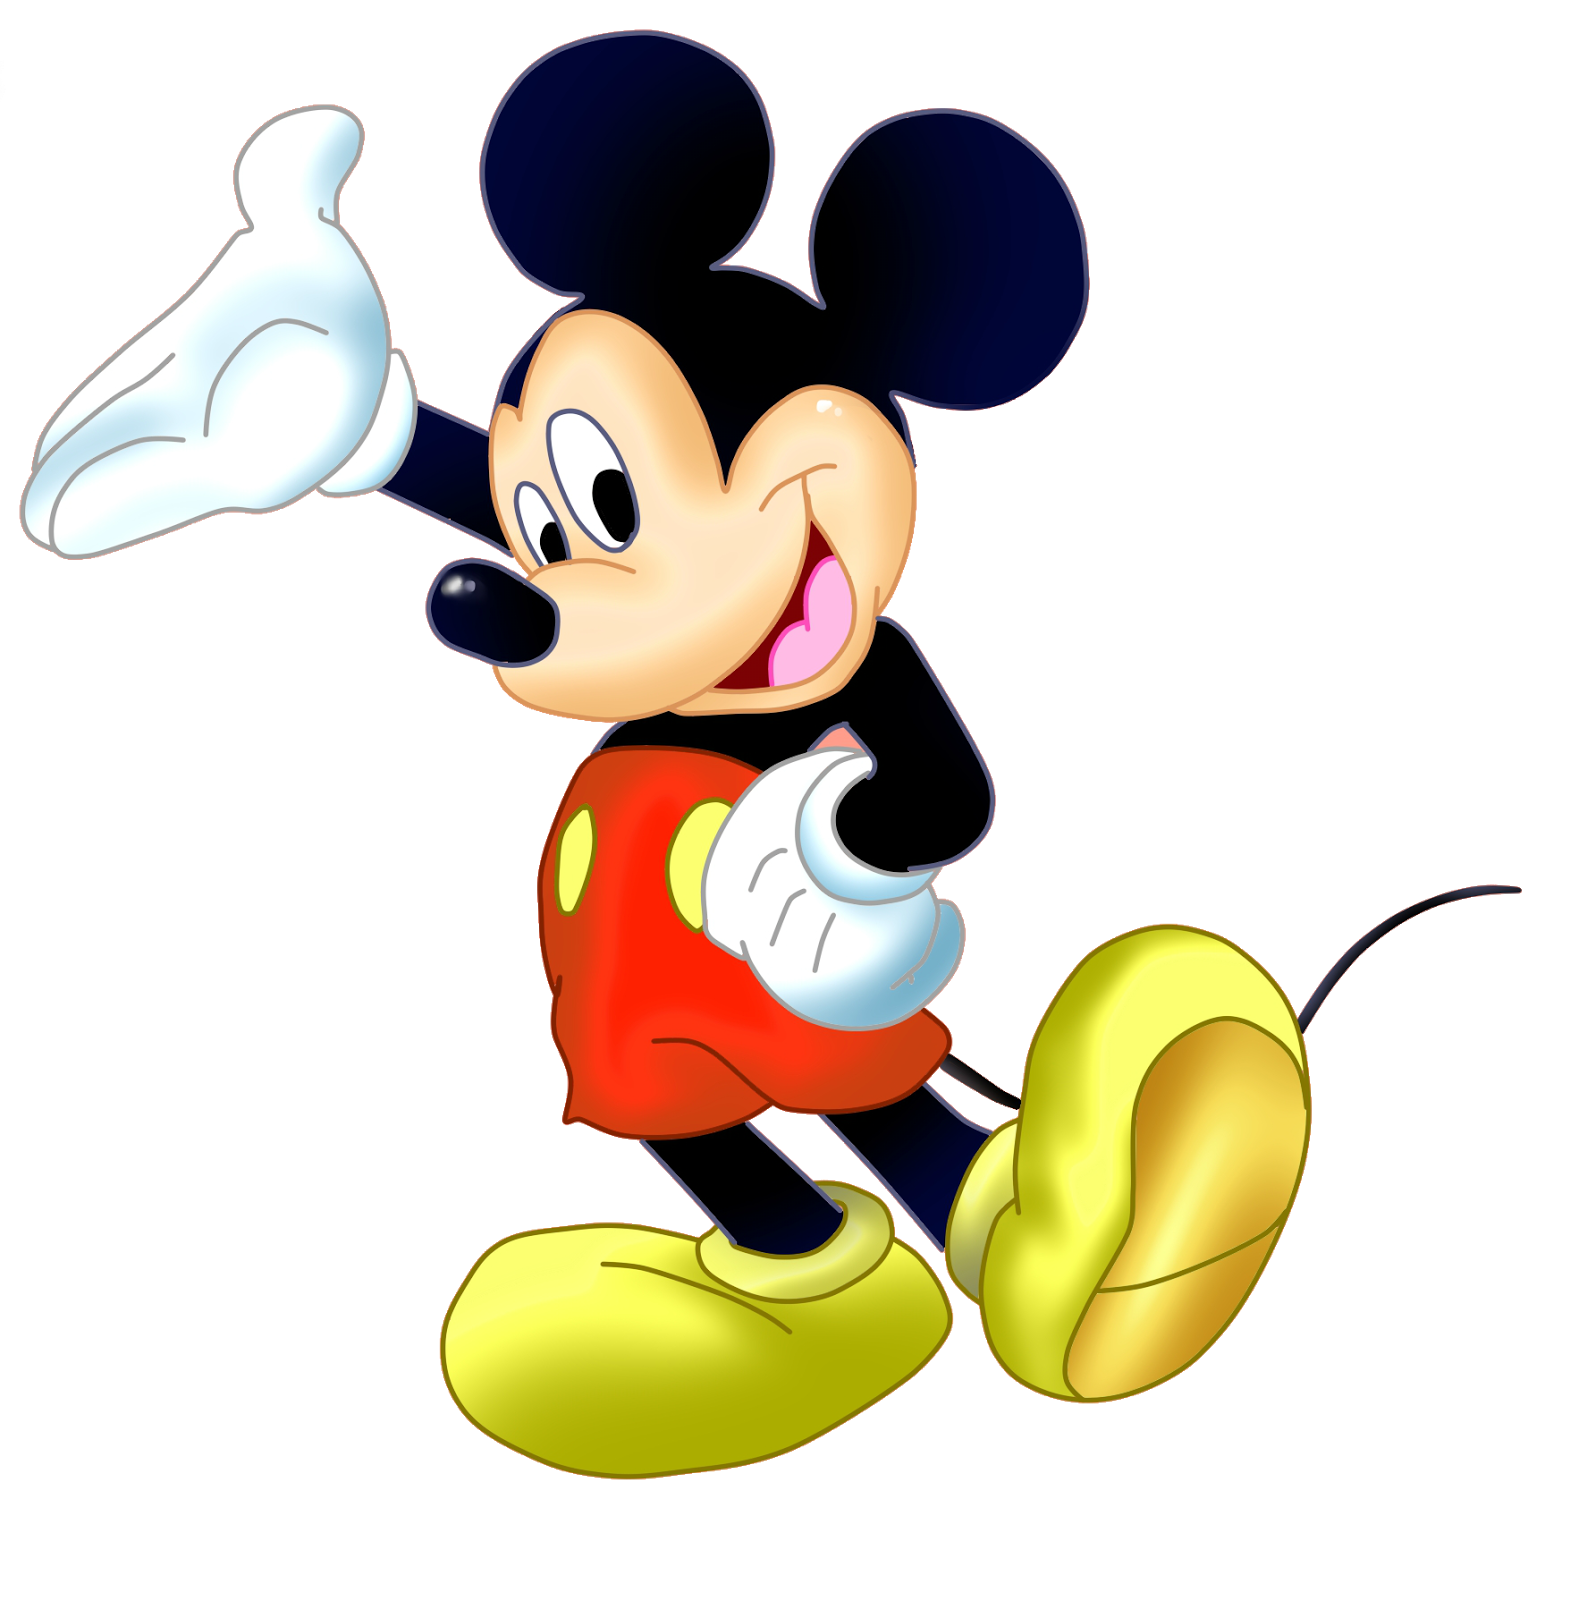 mickey mouse fantendo nintendo fanon wiki fandom powered by wikia. Black Bedroom Furniture Sets. Home Design Ideas